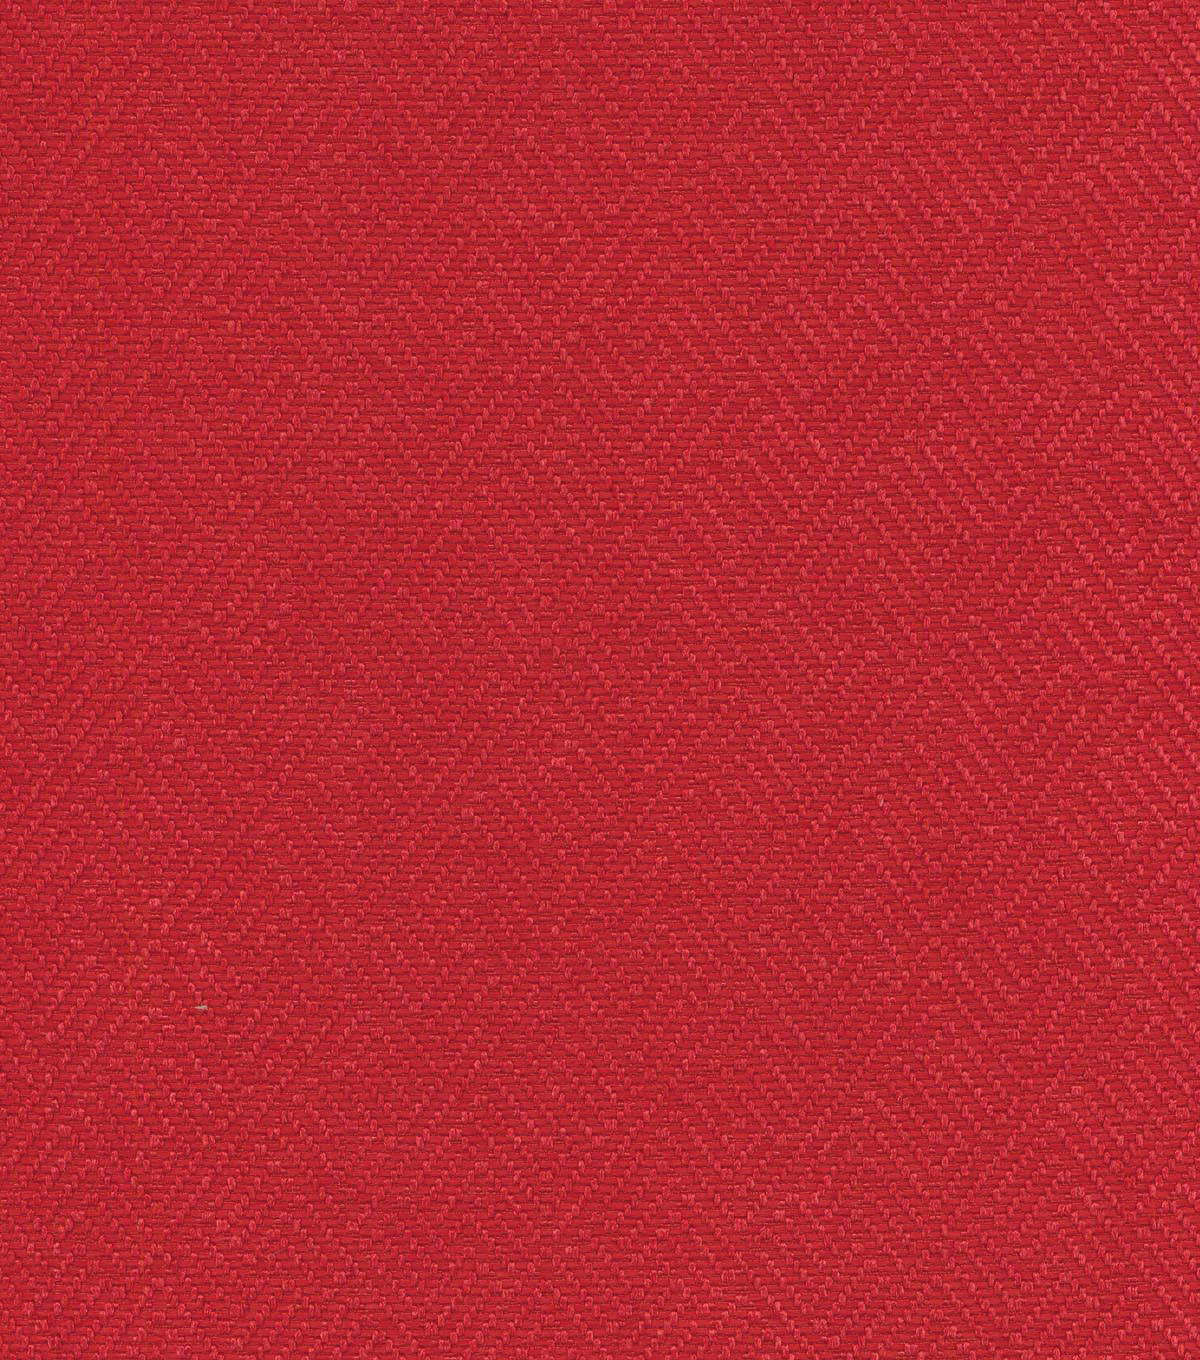 "Home Decor 8""x8"" Swatch Fabric-PK Lifestyles Basketry Cayenne"